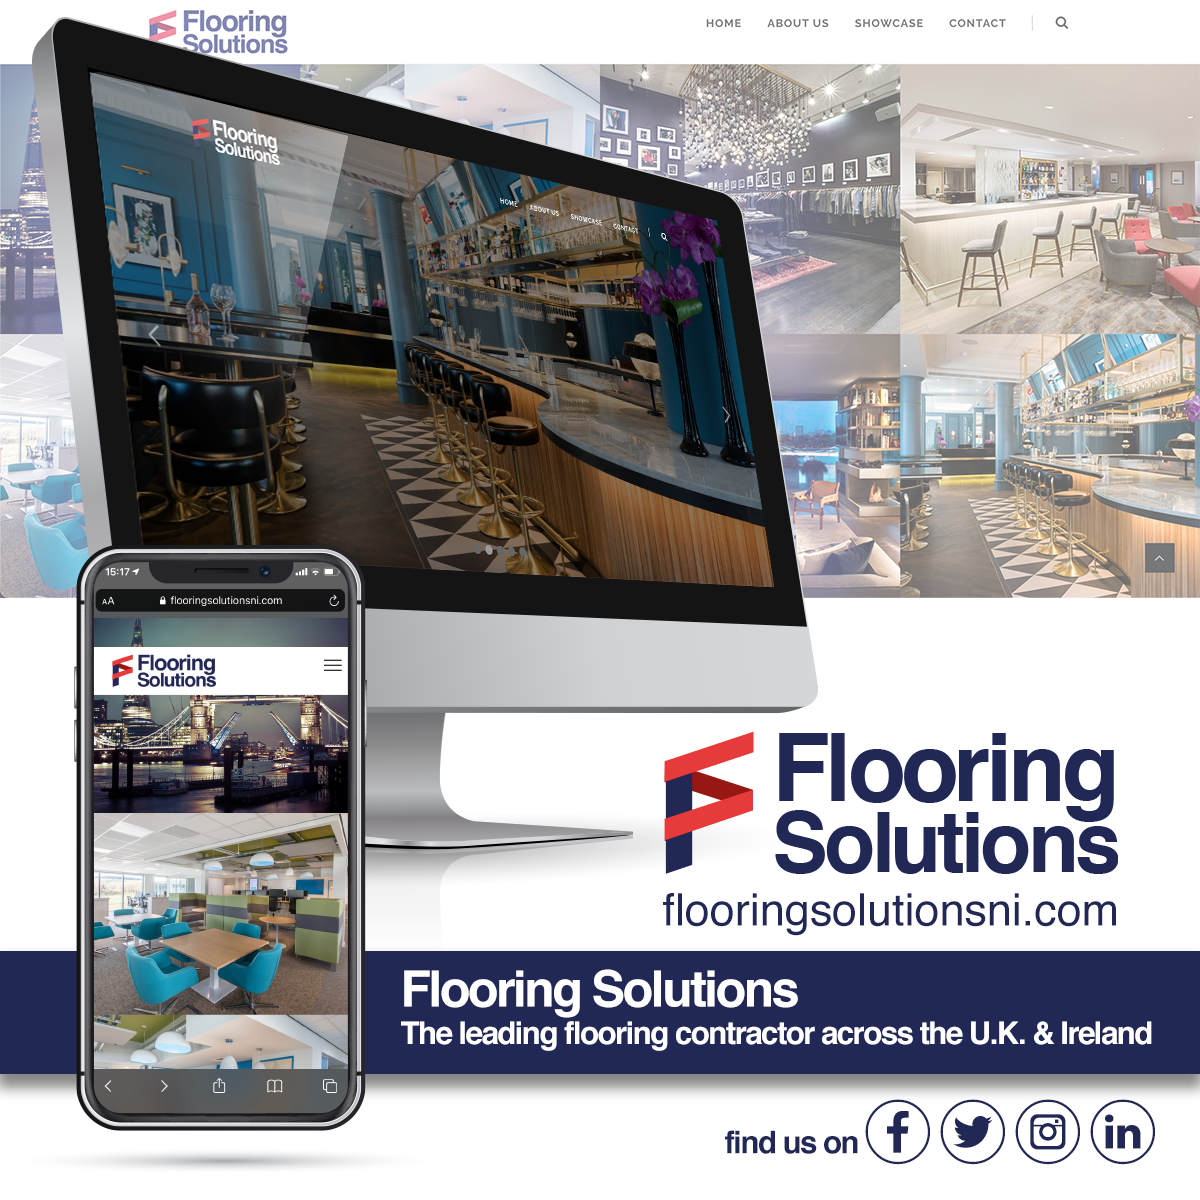 NI Designer web design flooringsolutionsni.com